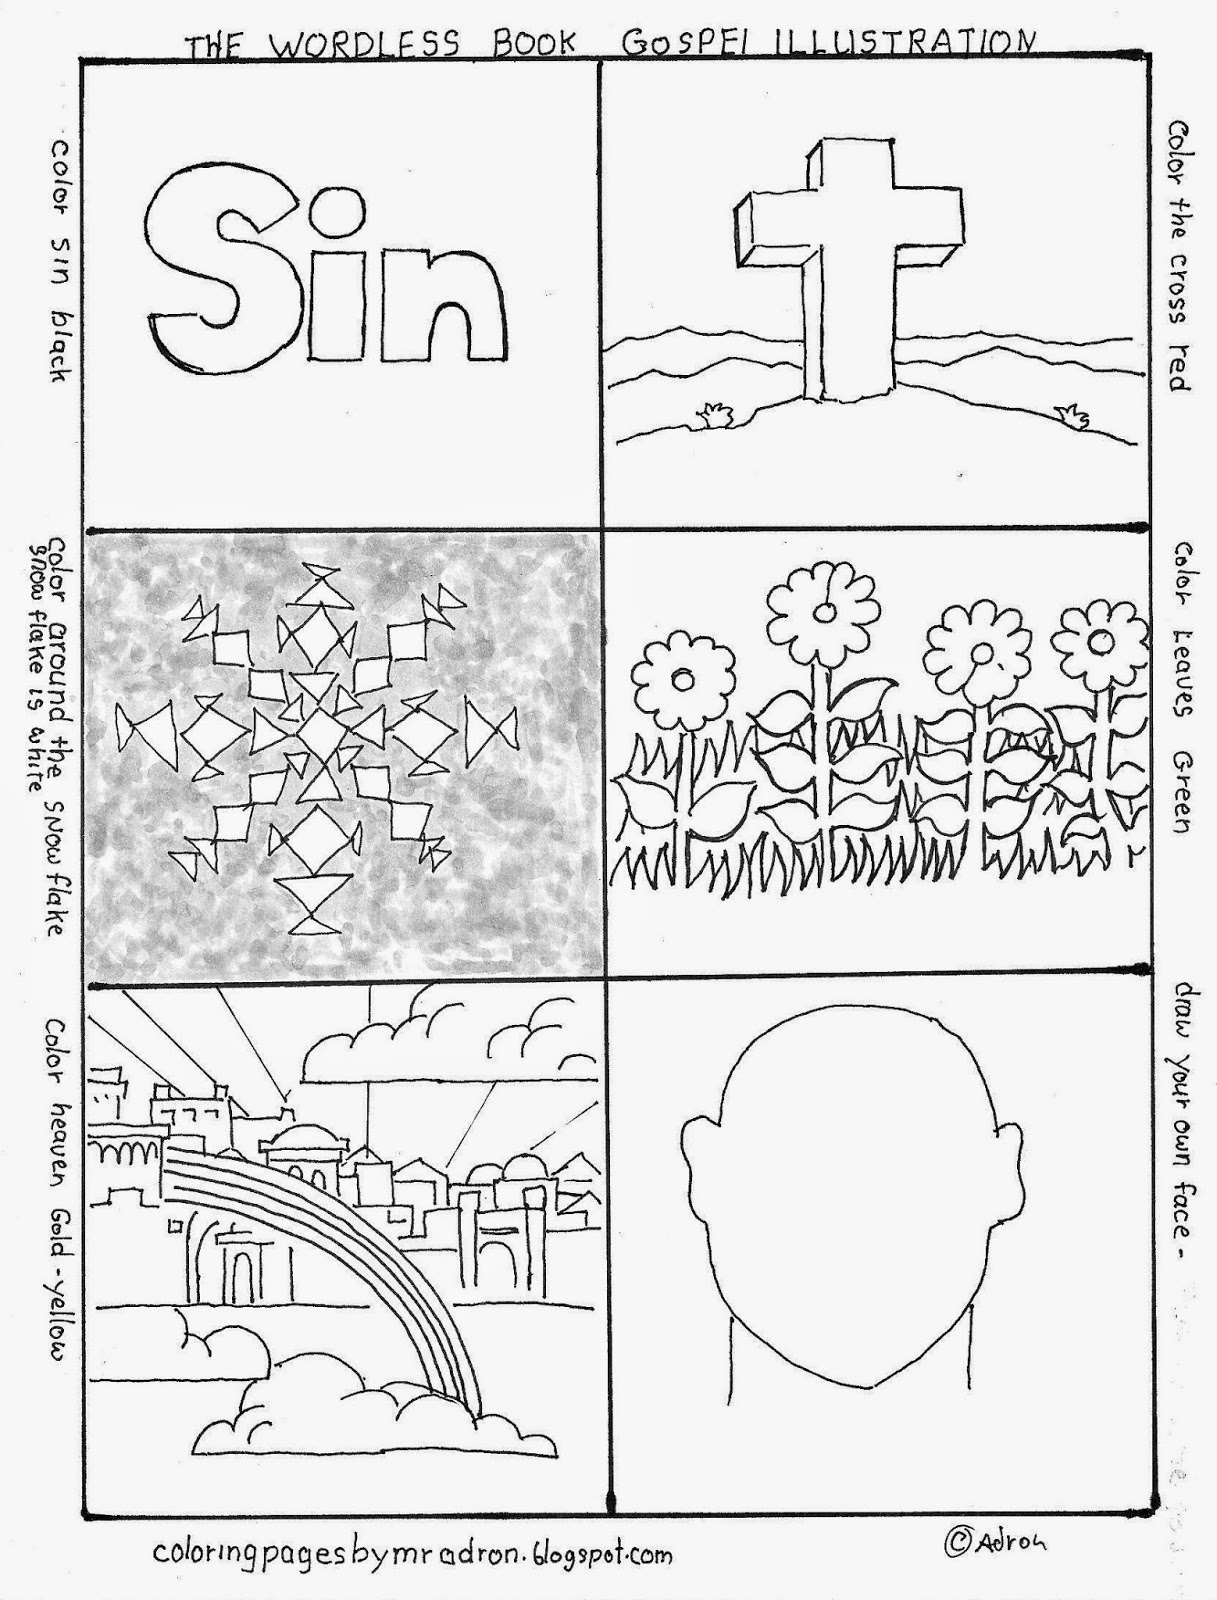 Coloring Pages For Kids By Mr Adron Wordless Book Gospel